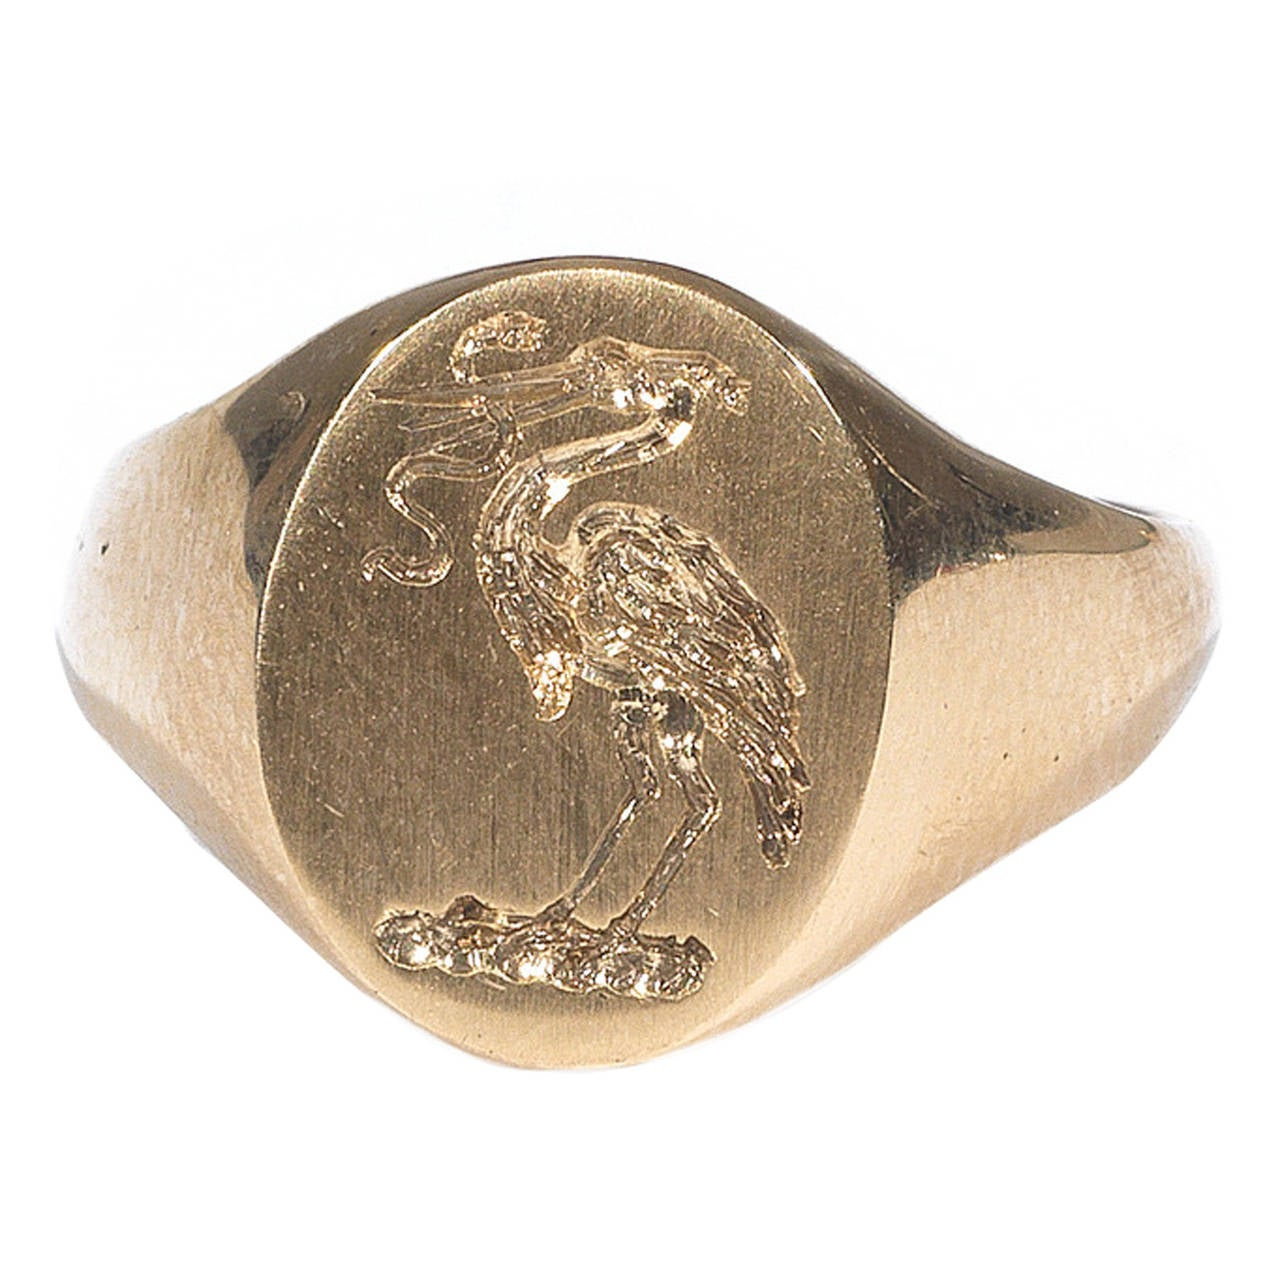 Gold Signet Stork and Snake Ring For Sale